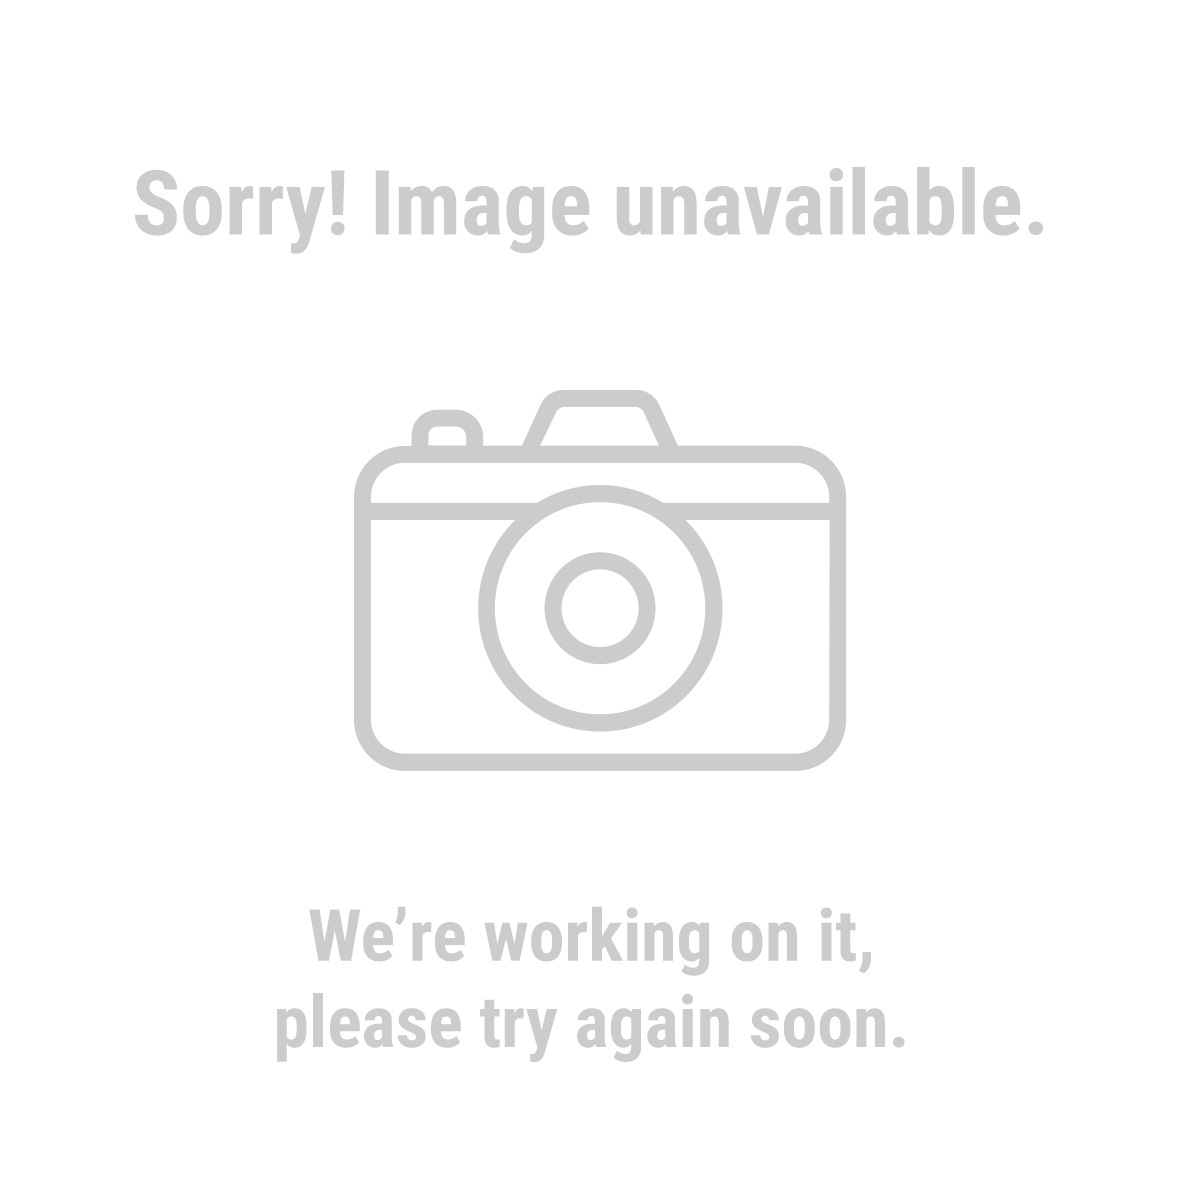 Badland® 61325 9000 lb. Off-Road Vehicle Electric Winch with Automatic Load-Holding Brake